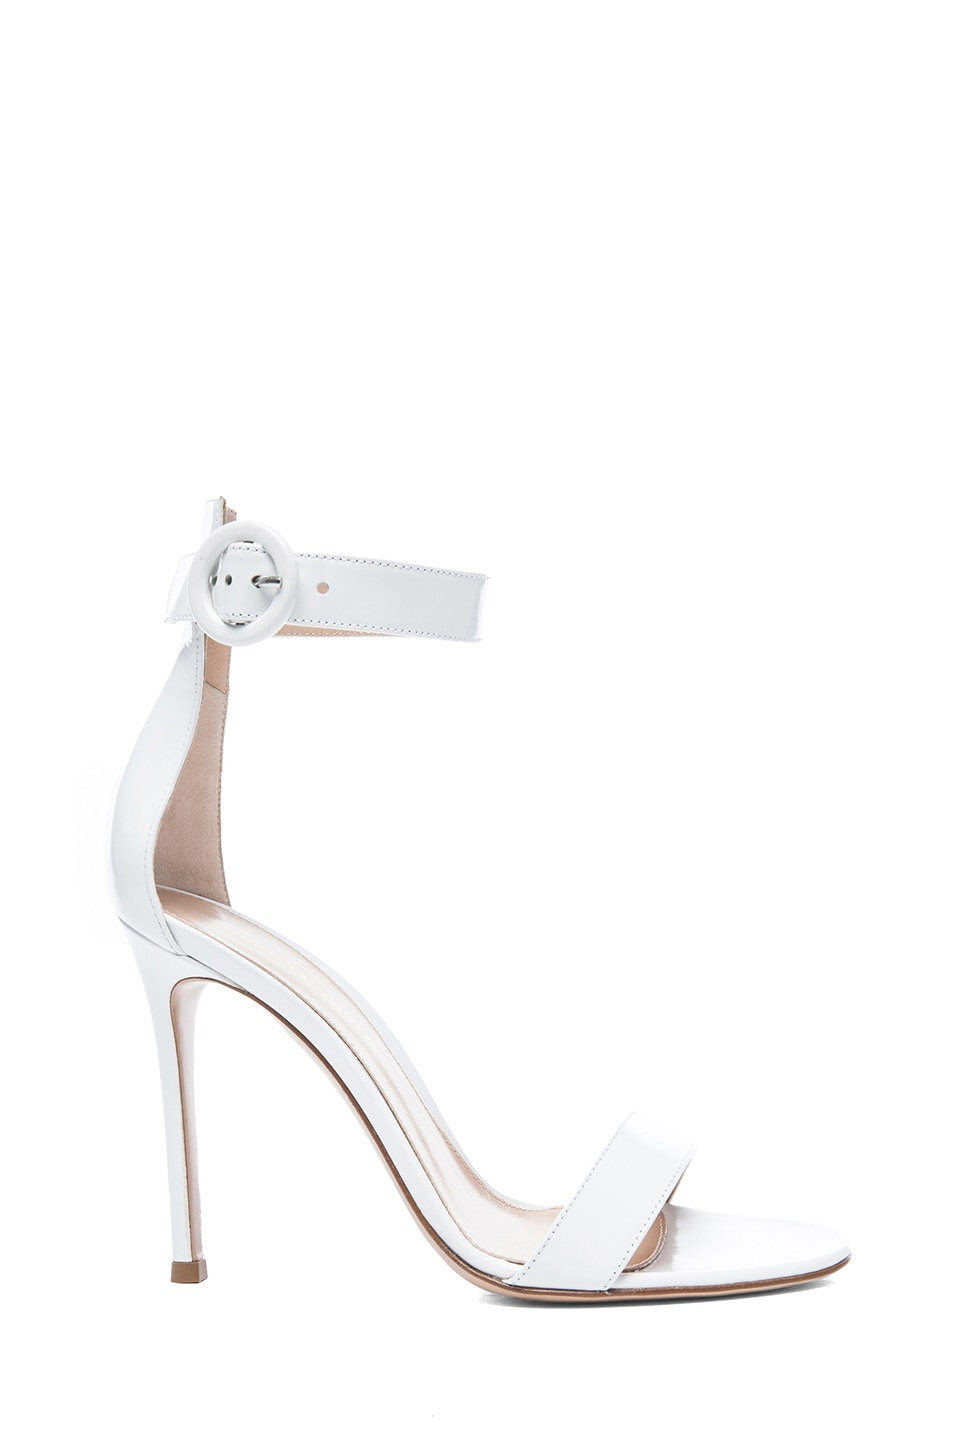 255f8ecf44b Gianvito Rossi Patent Leather Ankle Strap Sandals in White | FWRD